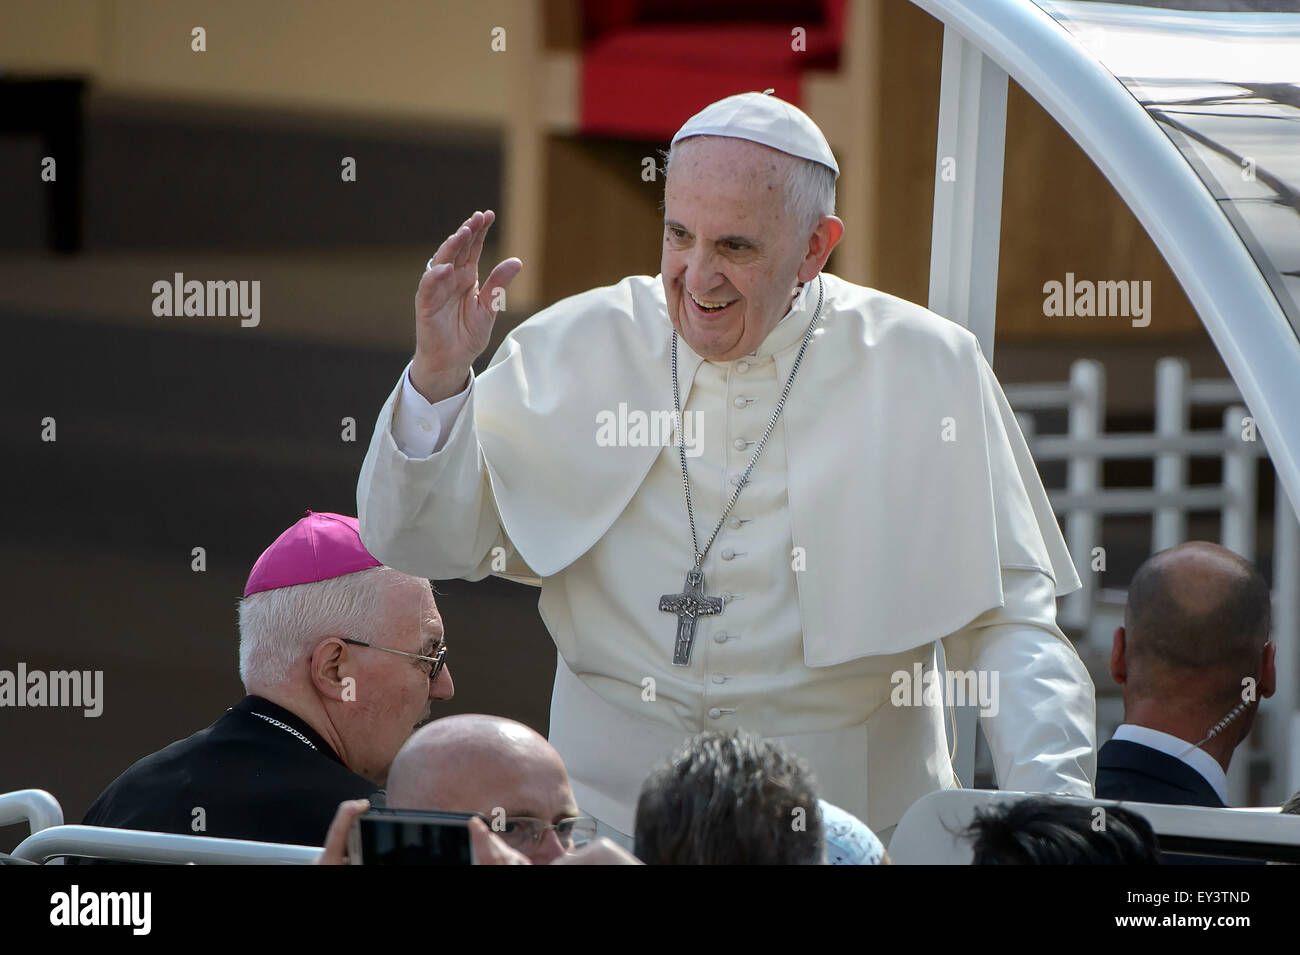 21st-june-2015-pope-francis-visits-turin